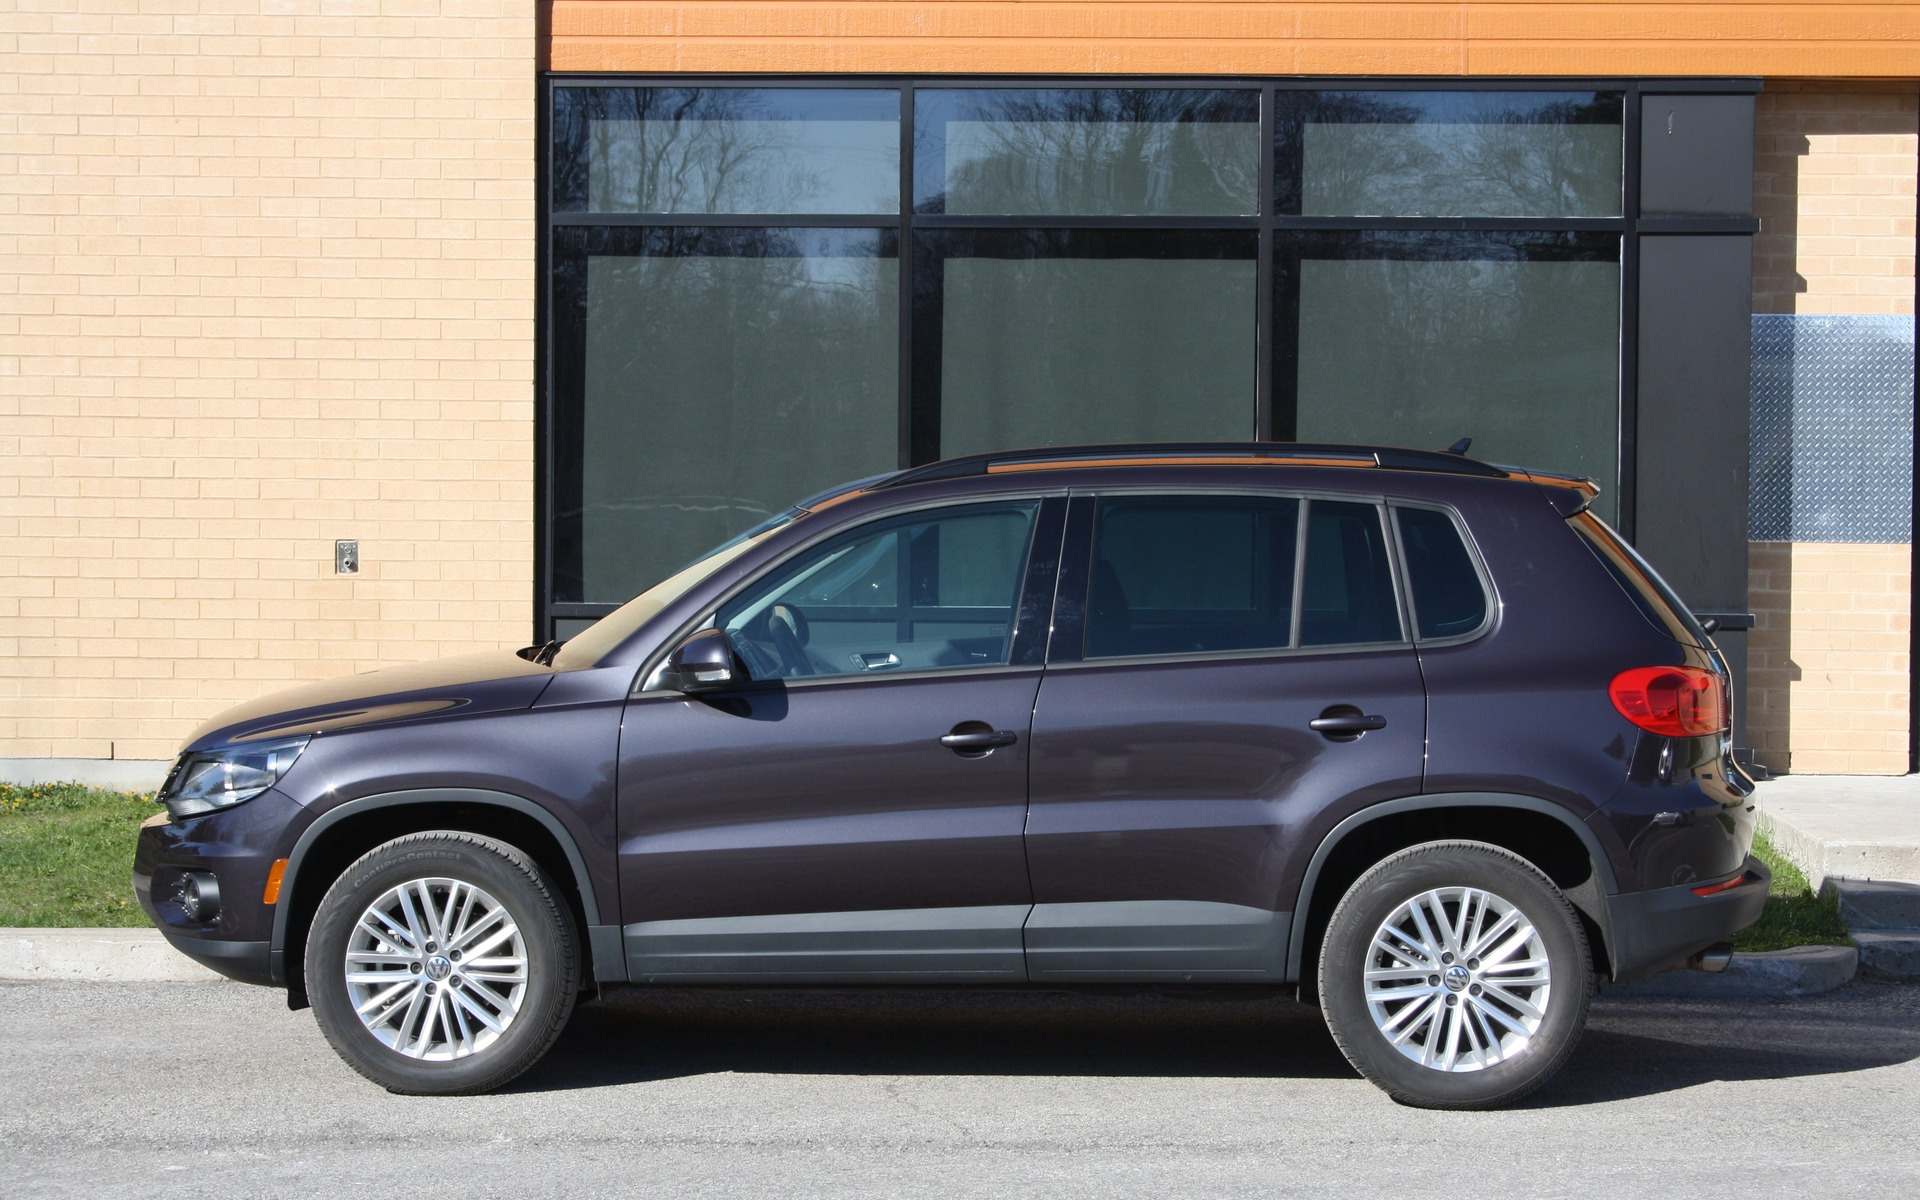 volkswagen tiguan 2016 comme un bon vin guide auto. Black Bedroom Furniture Sets. Home Design Ideas